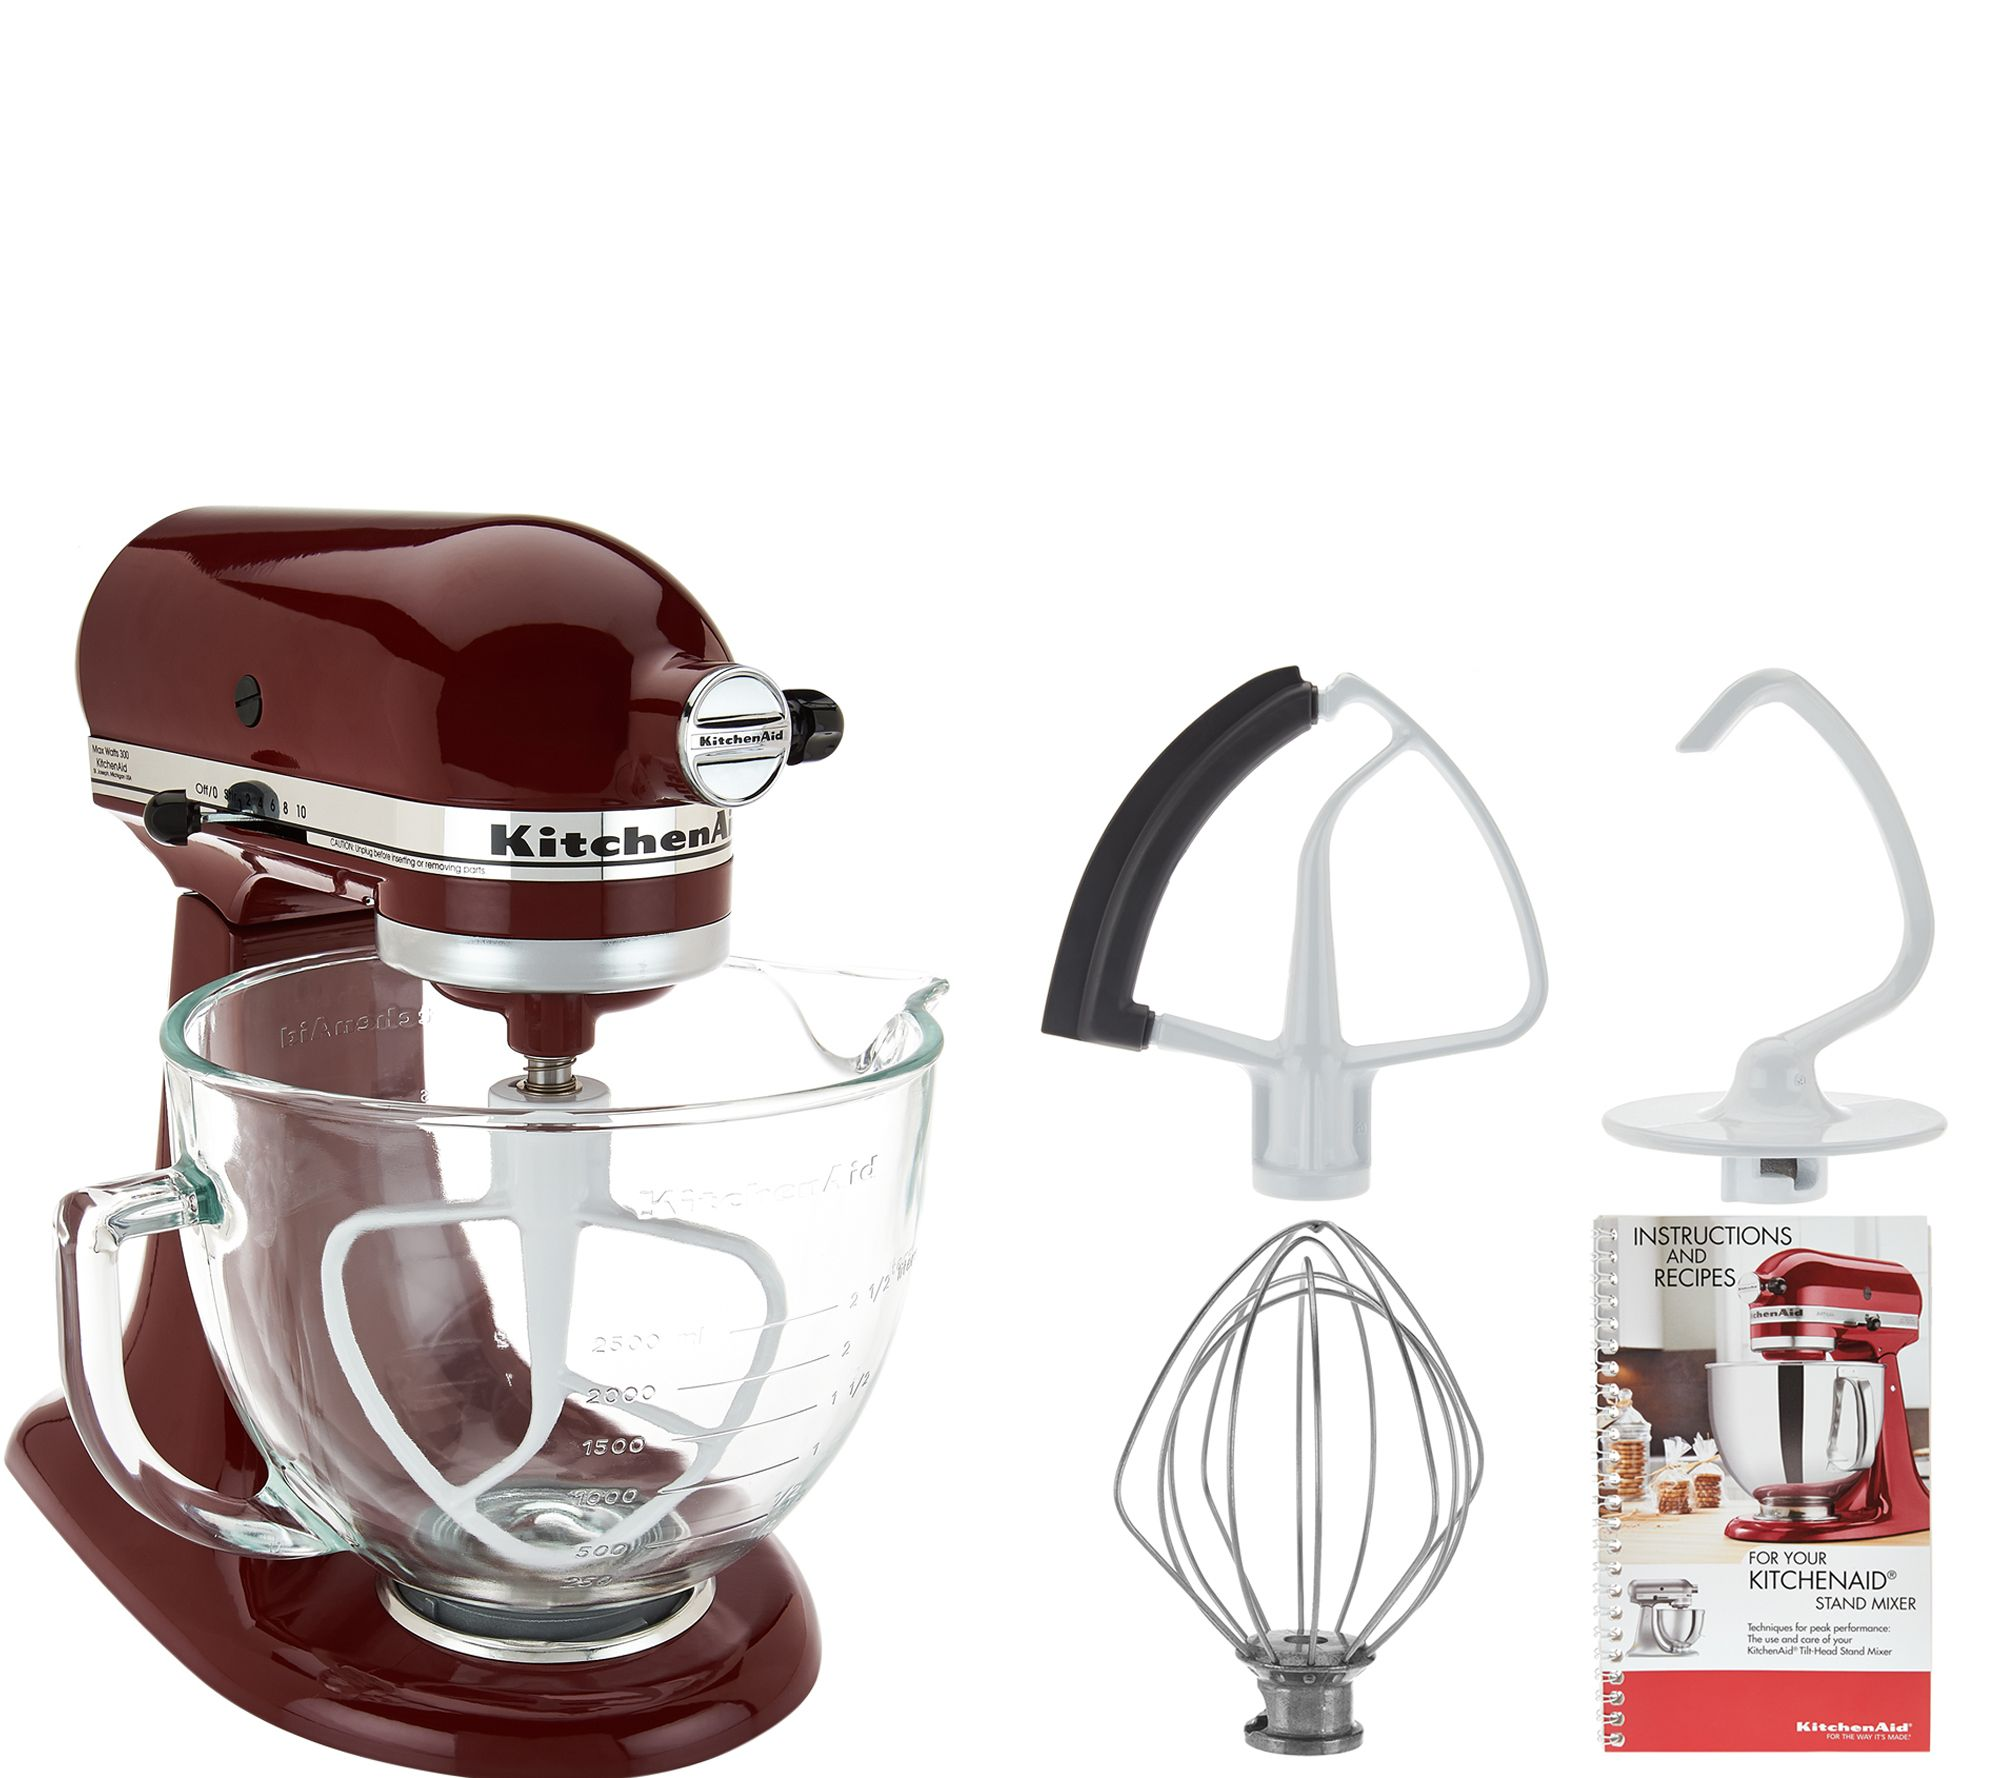 Uncategorized Qvc Kitchen Appliances kitchenaid small appliances kitchen food qvc com 5qt 300w tilt head stand mixer wglass bowl flex edge